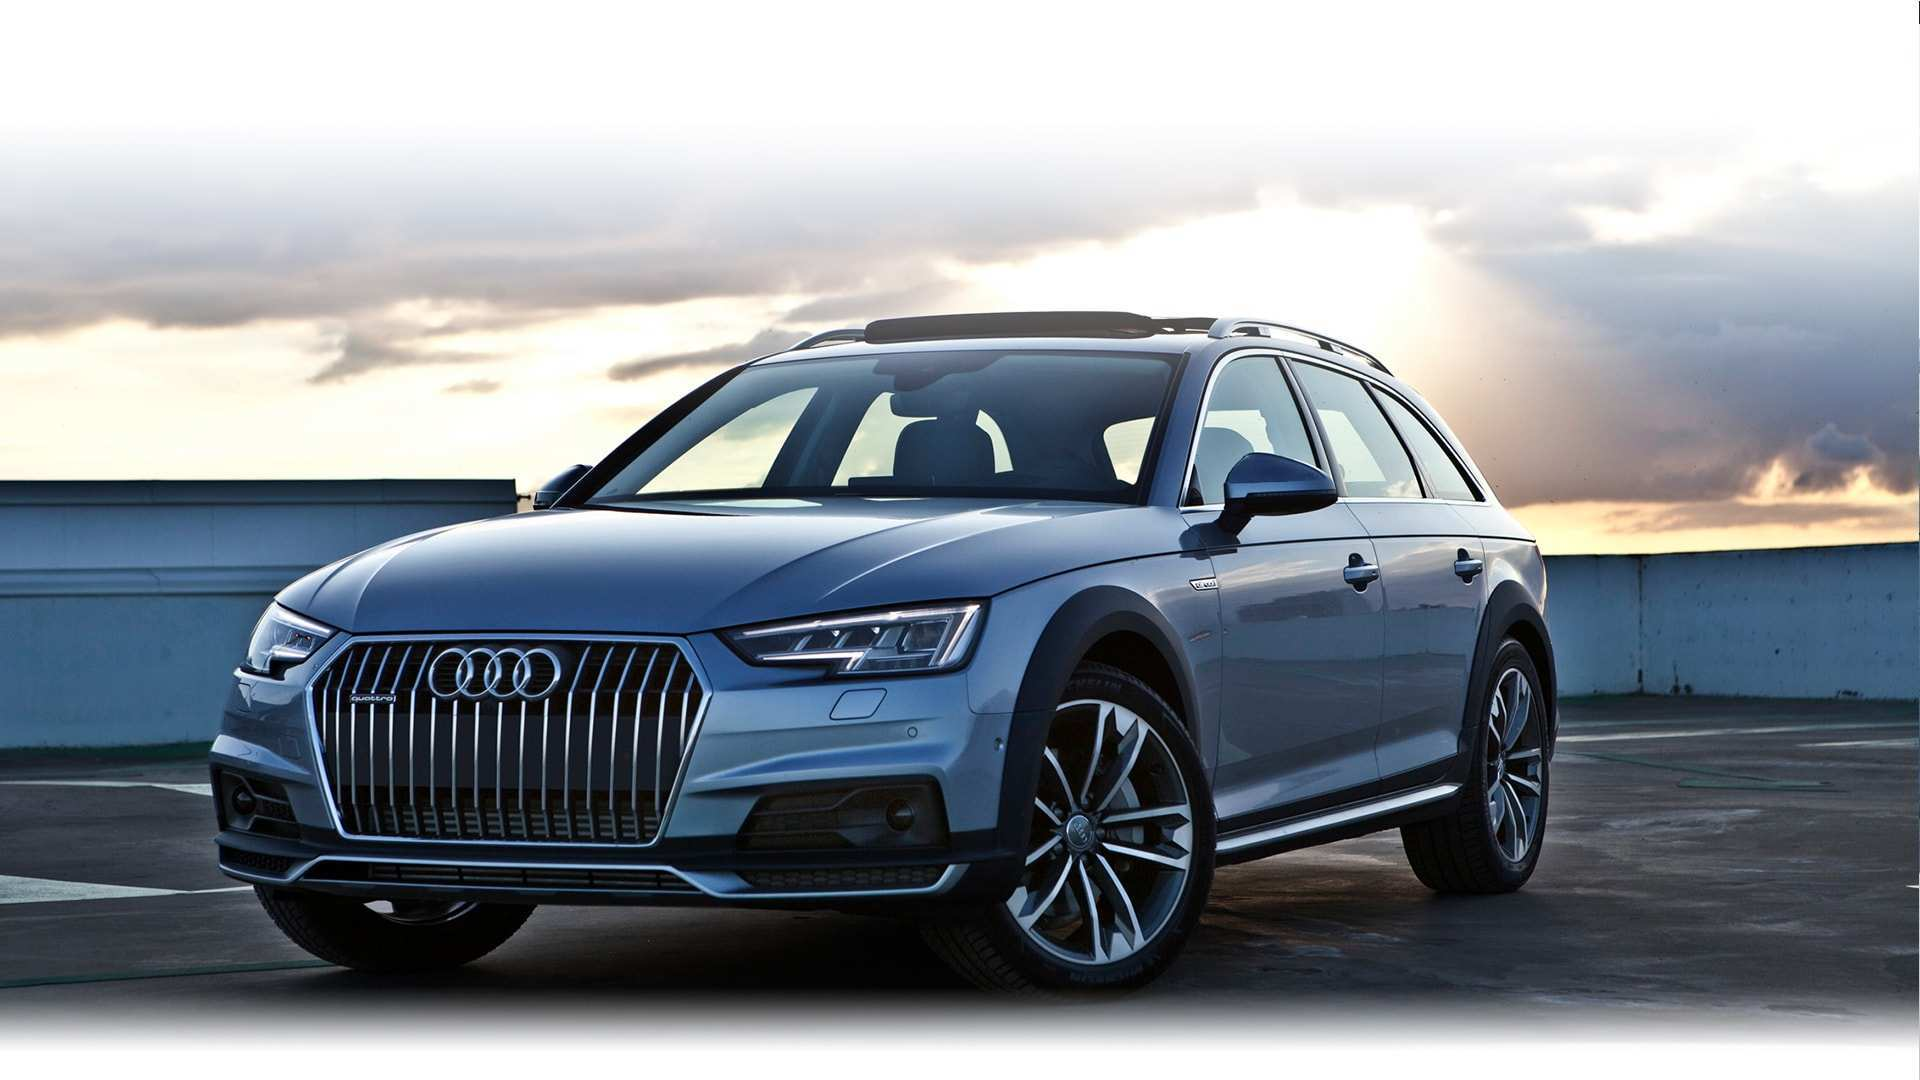 95 All New 2019 Audi Allroad Price Design And Review